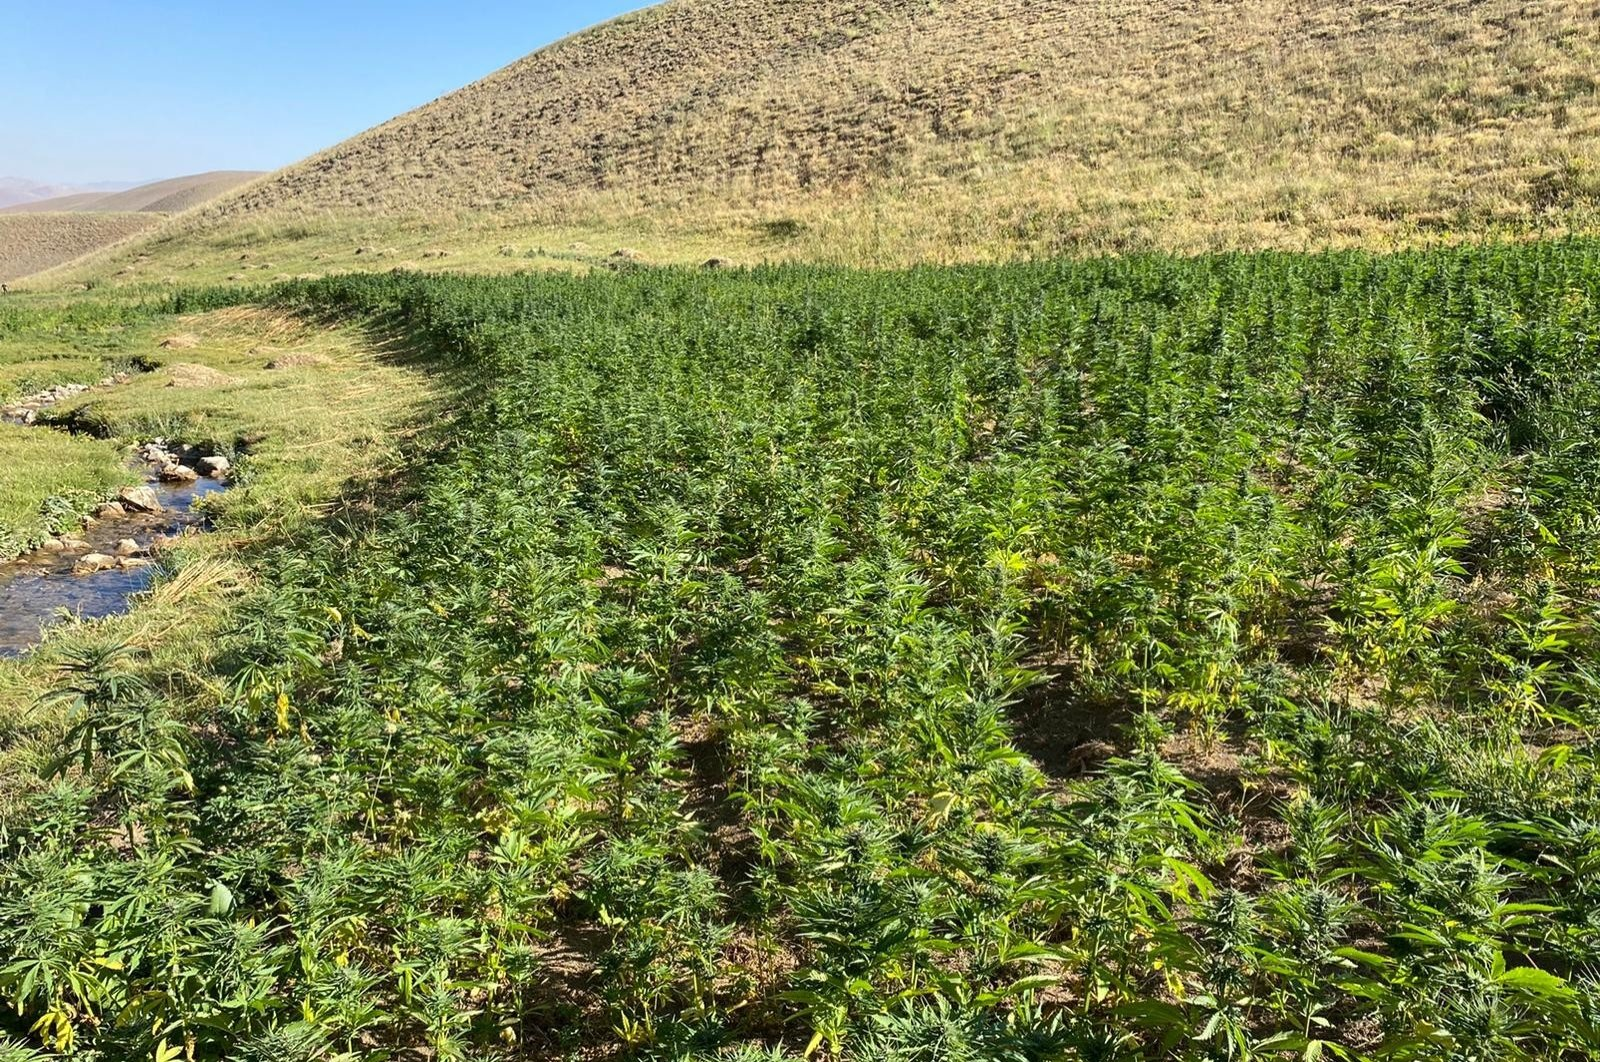 Seized cannabis gardens in the countryside of Van province, Aug. 22, 2020. (IHA Photo)